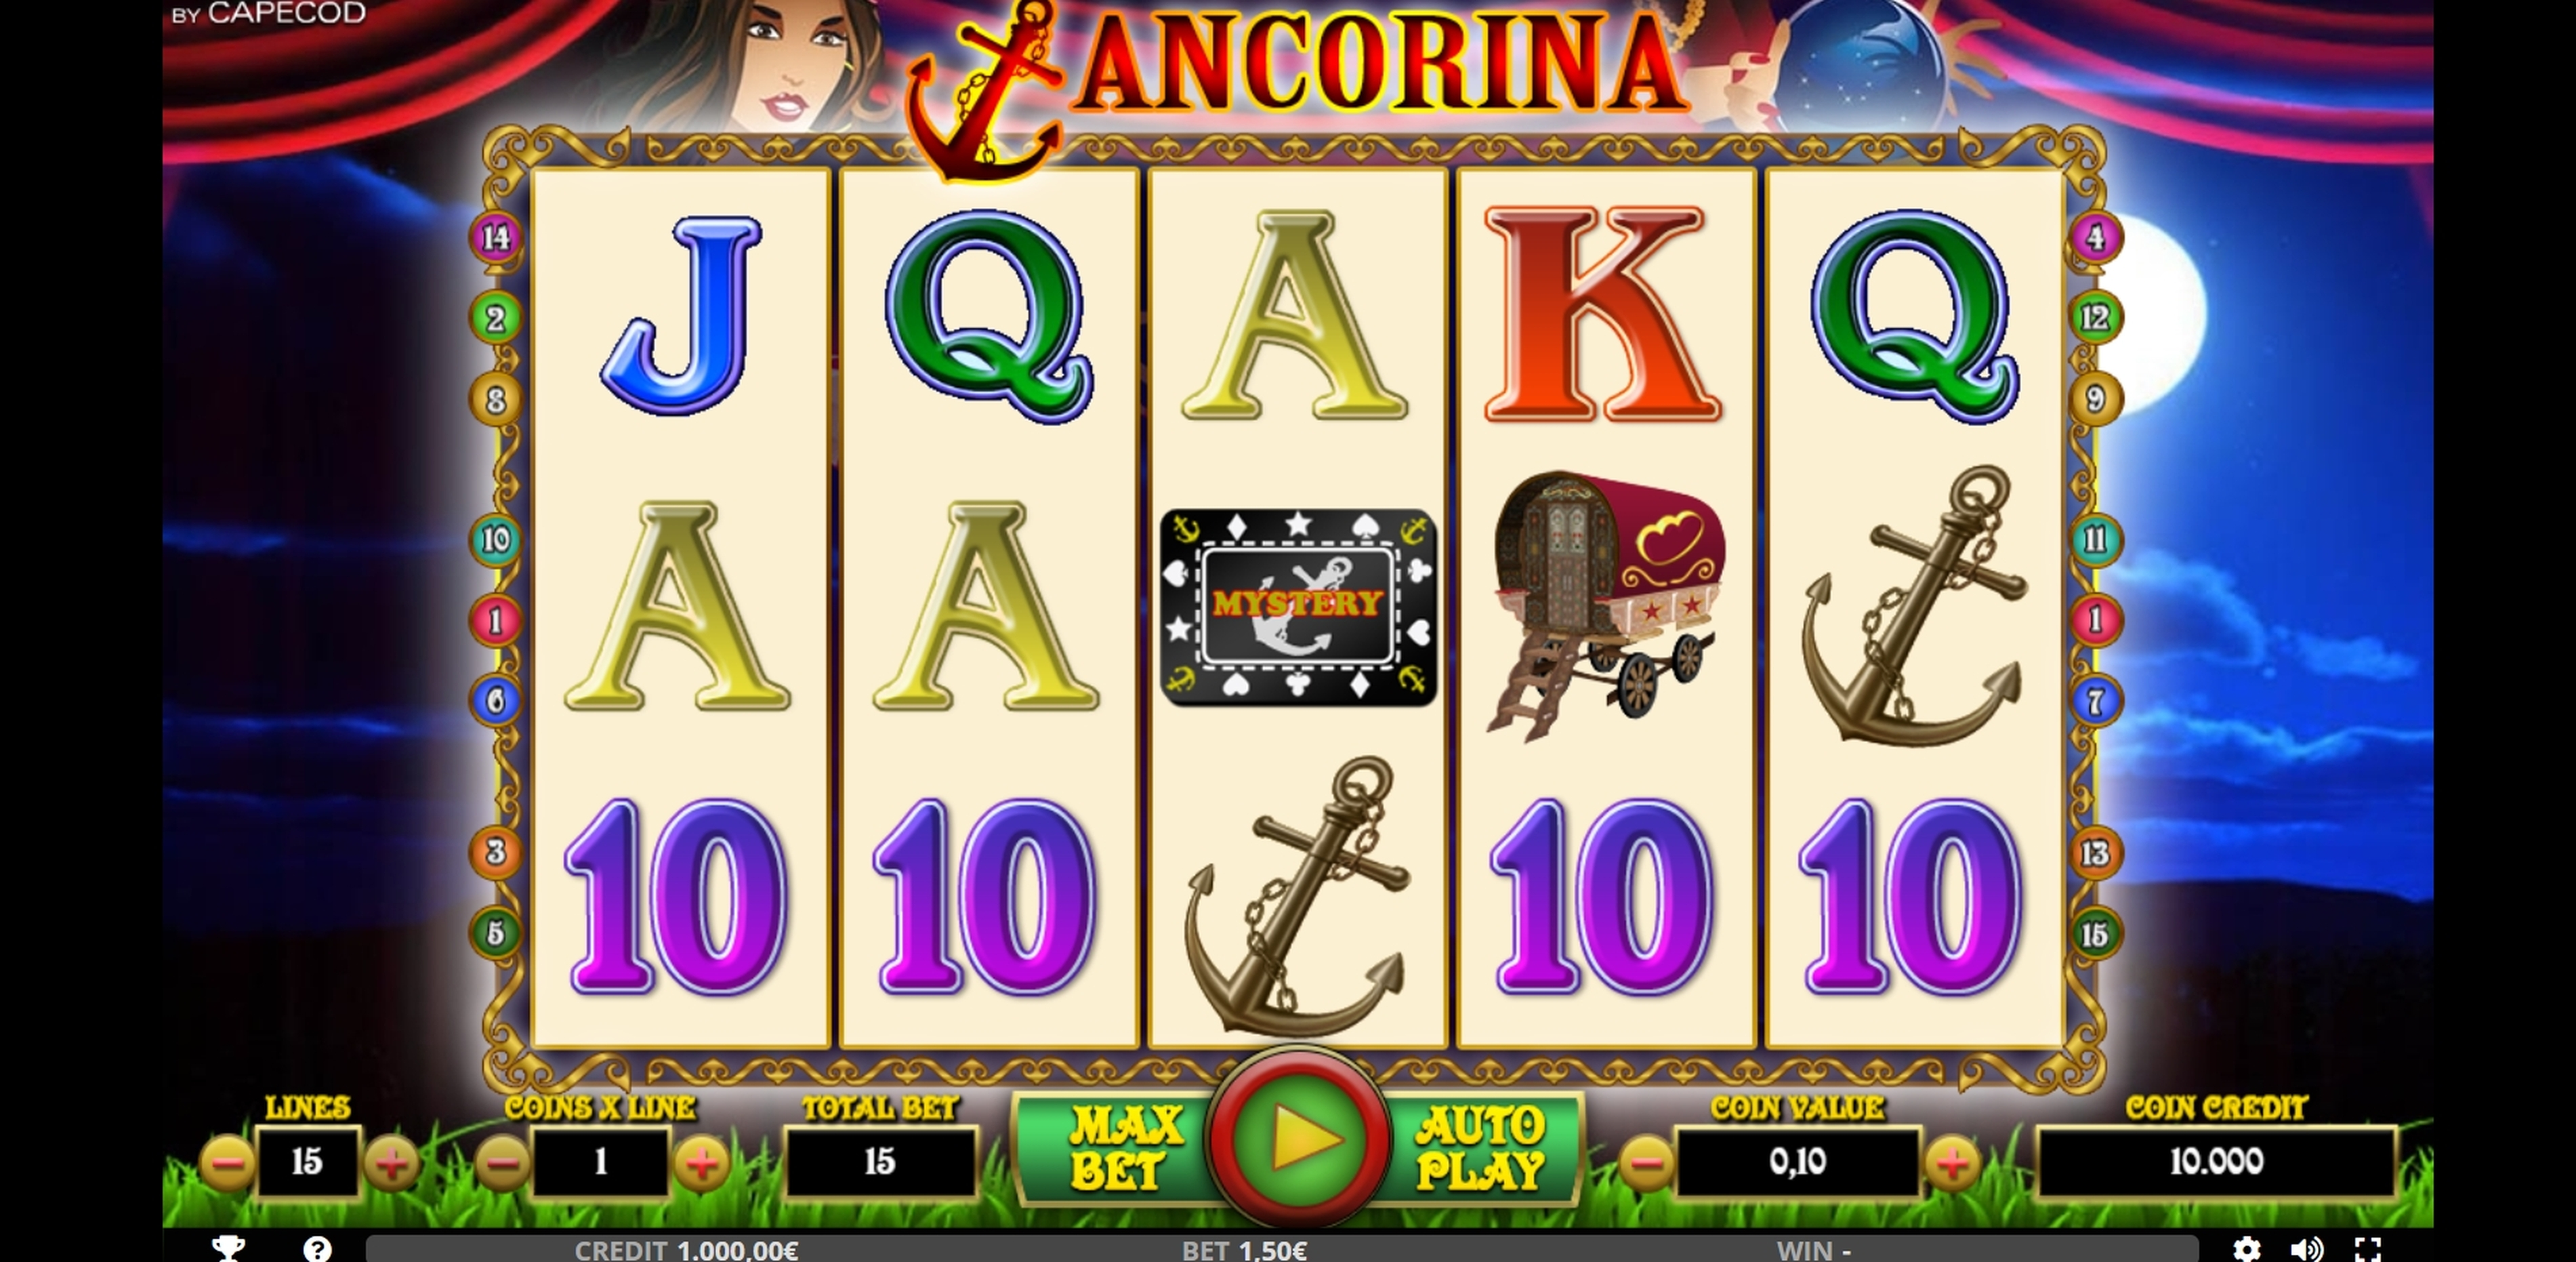 Reels in ANCORINA Slot Game by Capecod Gaming